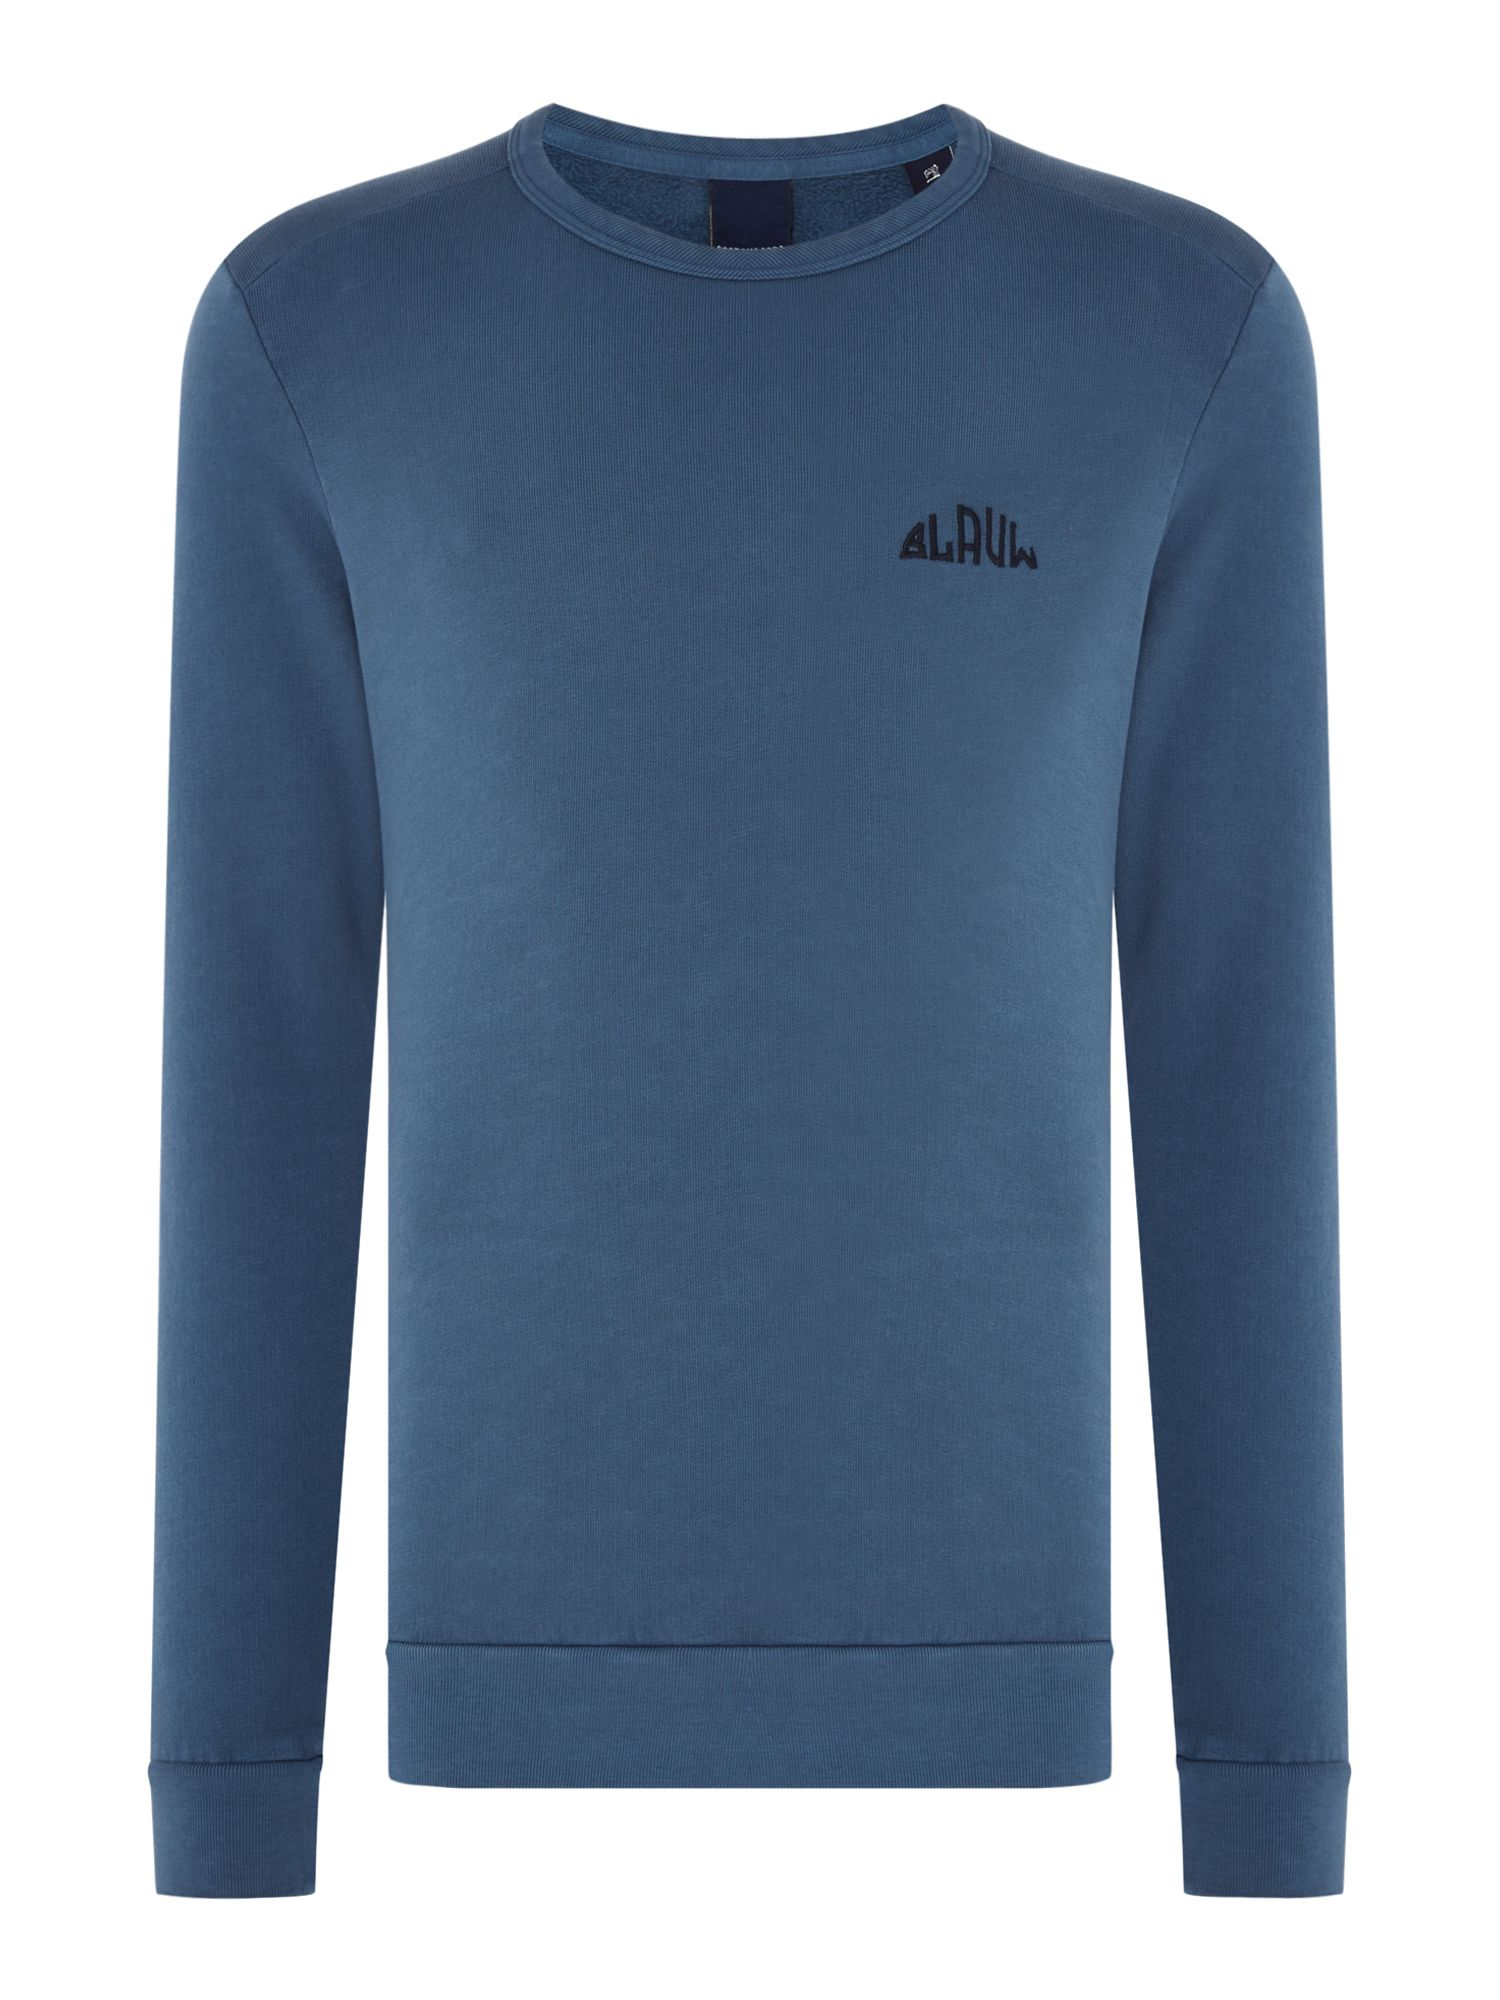 Men's Scotch & Soda Garment Dyed Sweatshirt, Blue